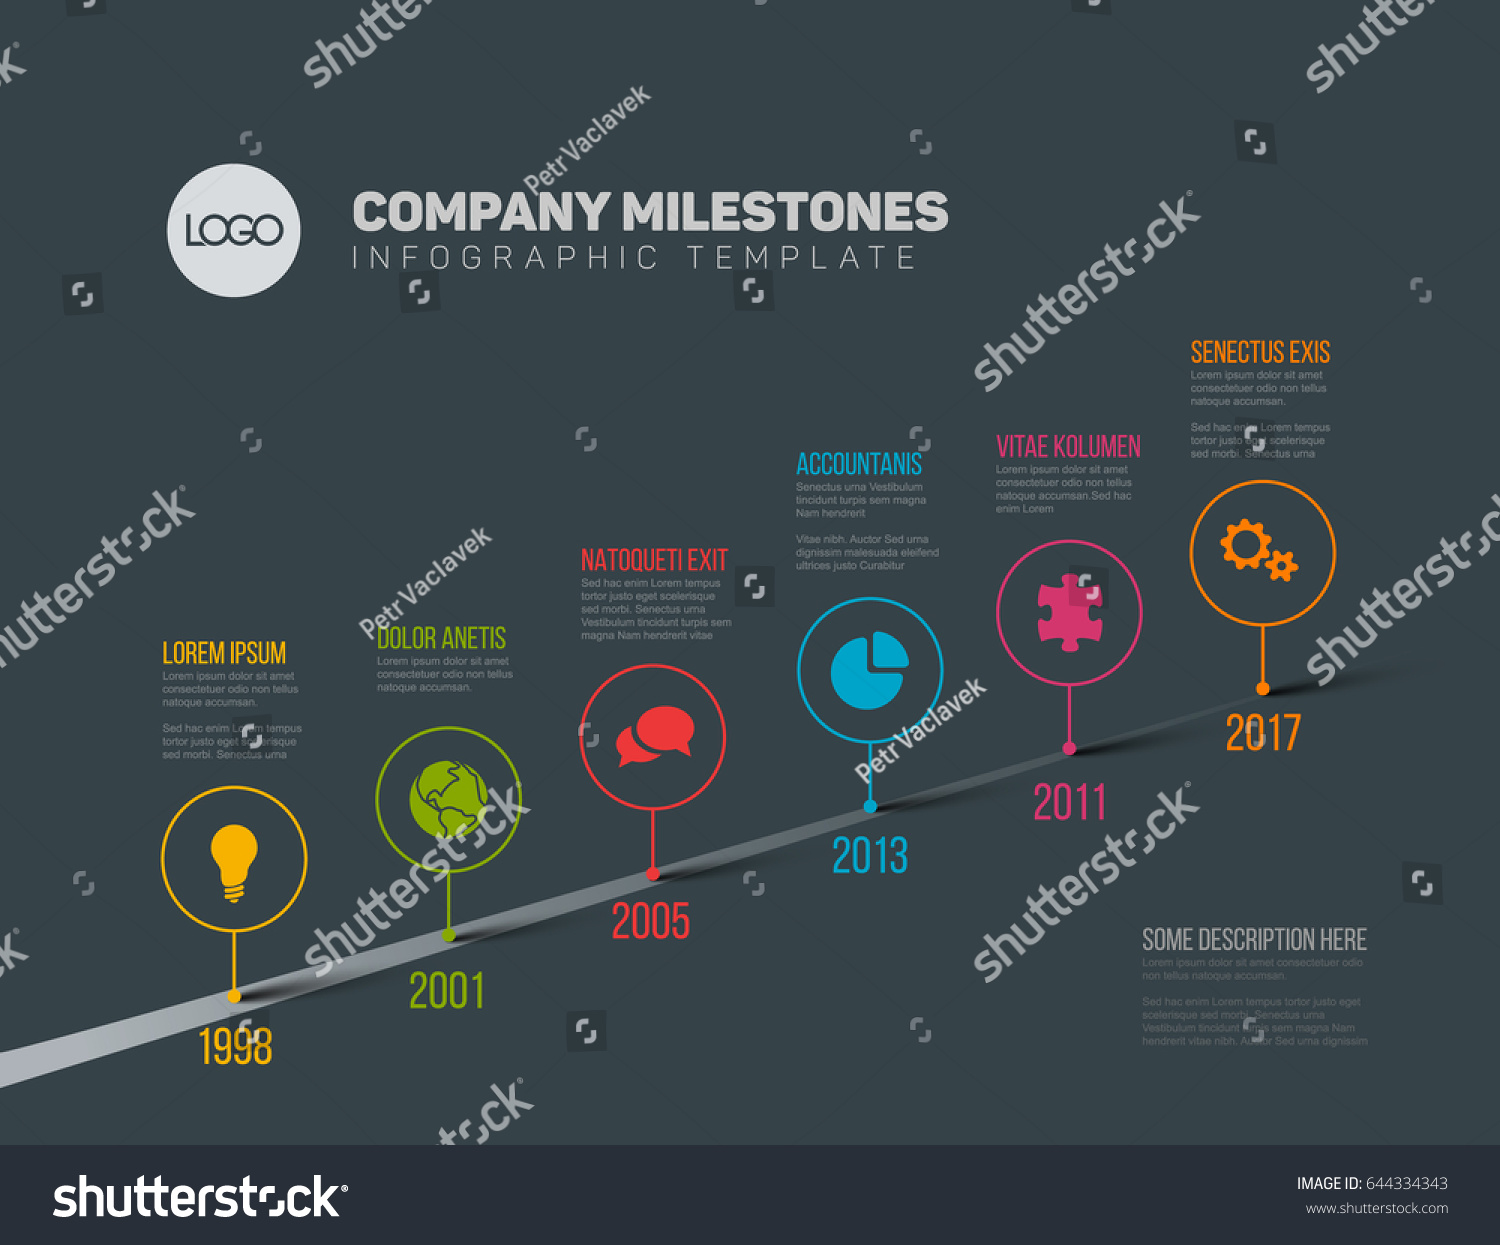 Vector Infographic Company Milestones Timeline Template Stock Vector     Vector Infographic Company Milestones Timeline Template with pointers on a  straight road line   dark version